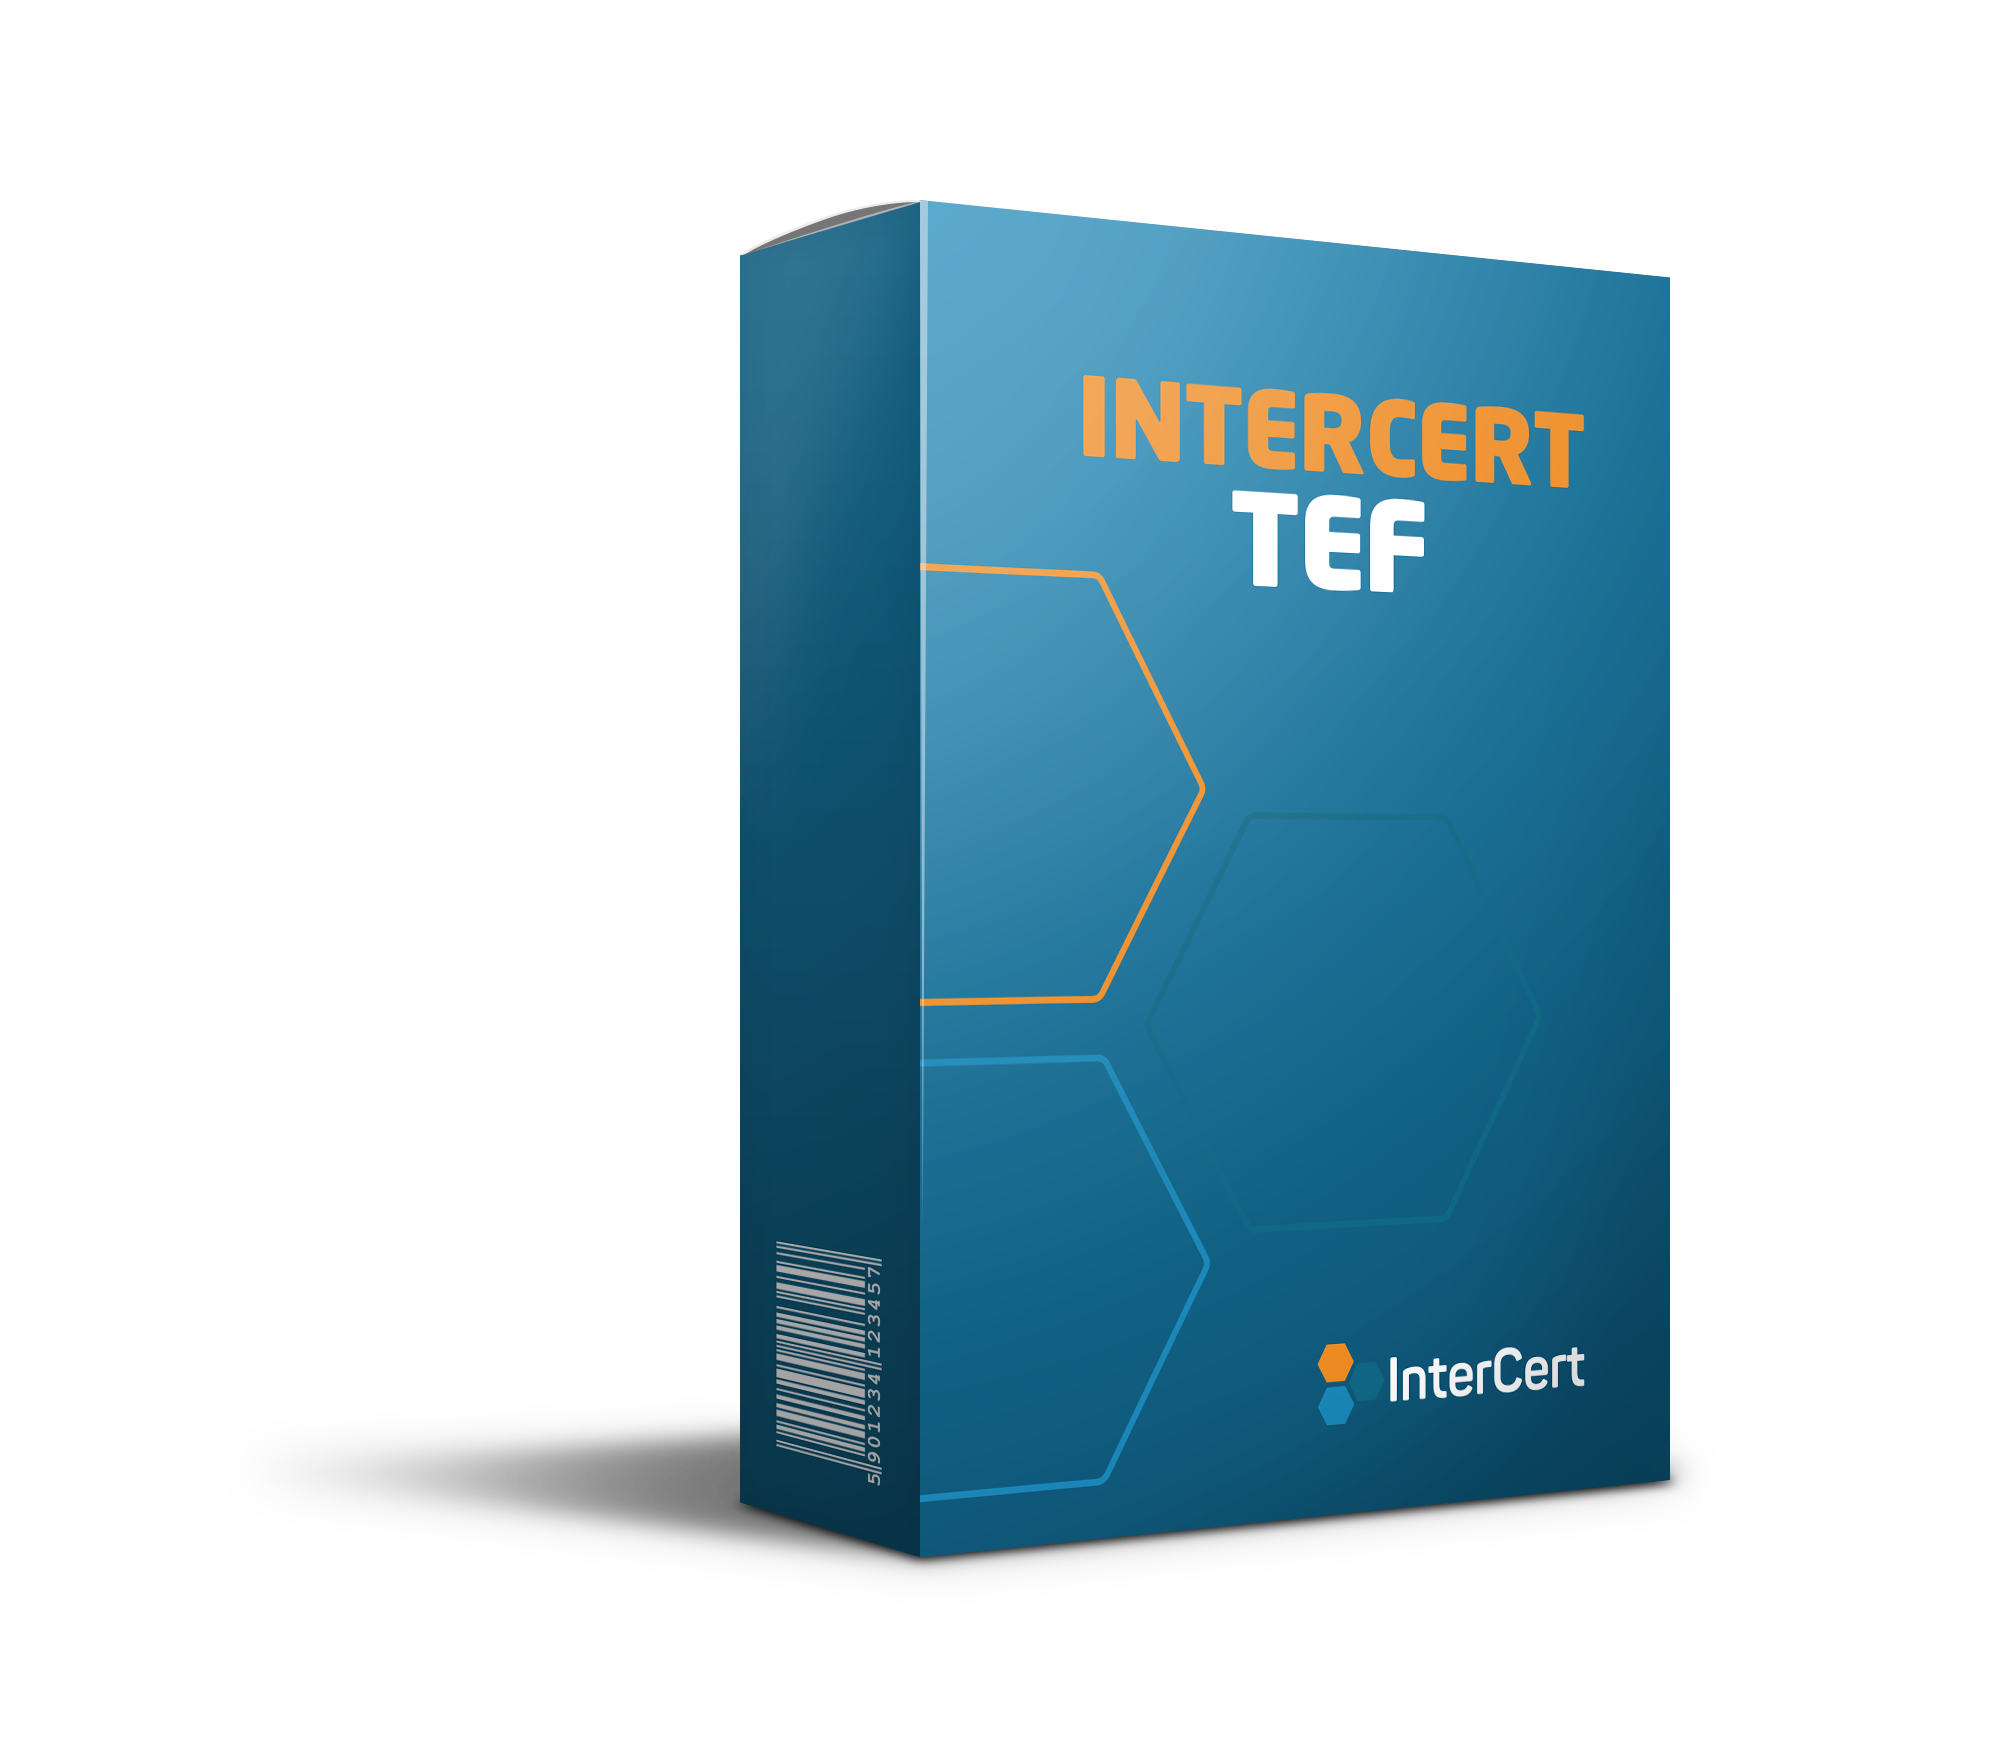 InterCert TEF